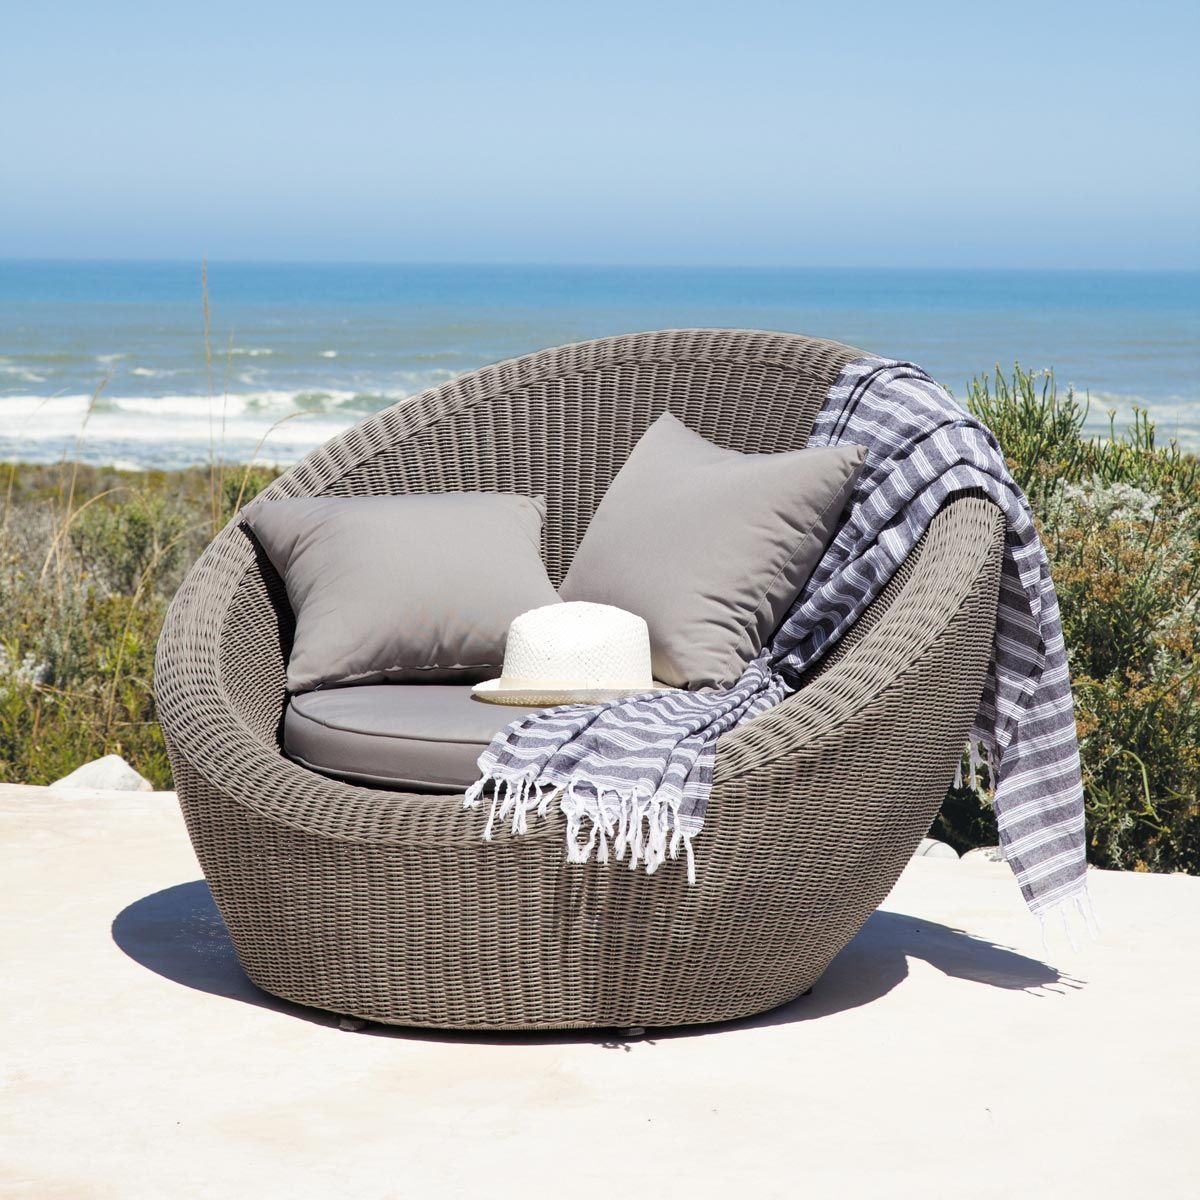 Gartenstühle rattan rund  Gartensessel rund hellgrau CAPE TOWN | sunrooms and covered ...